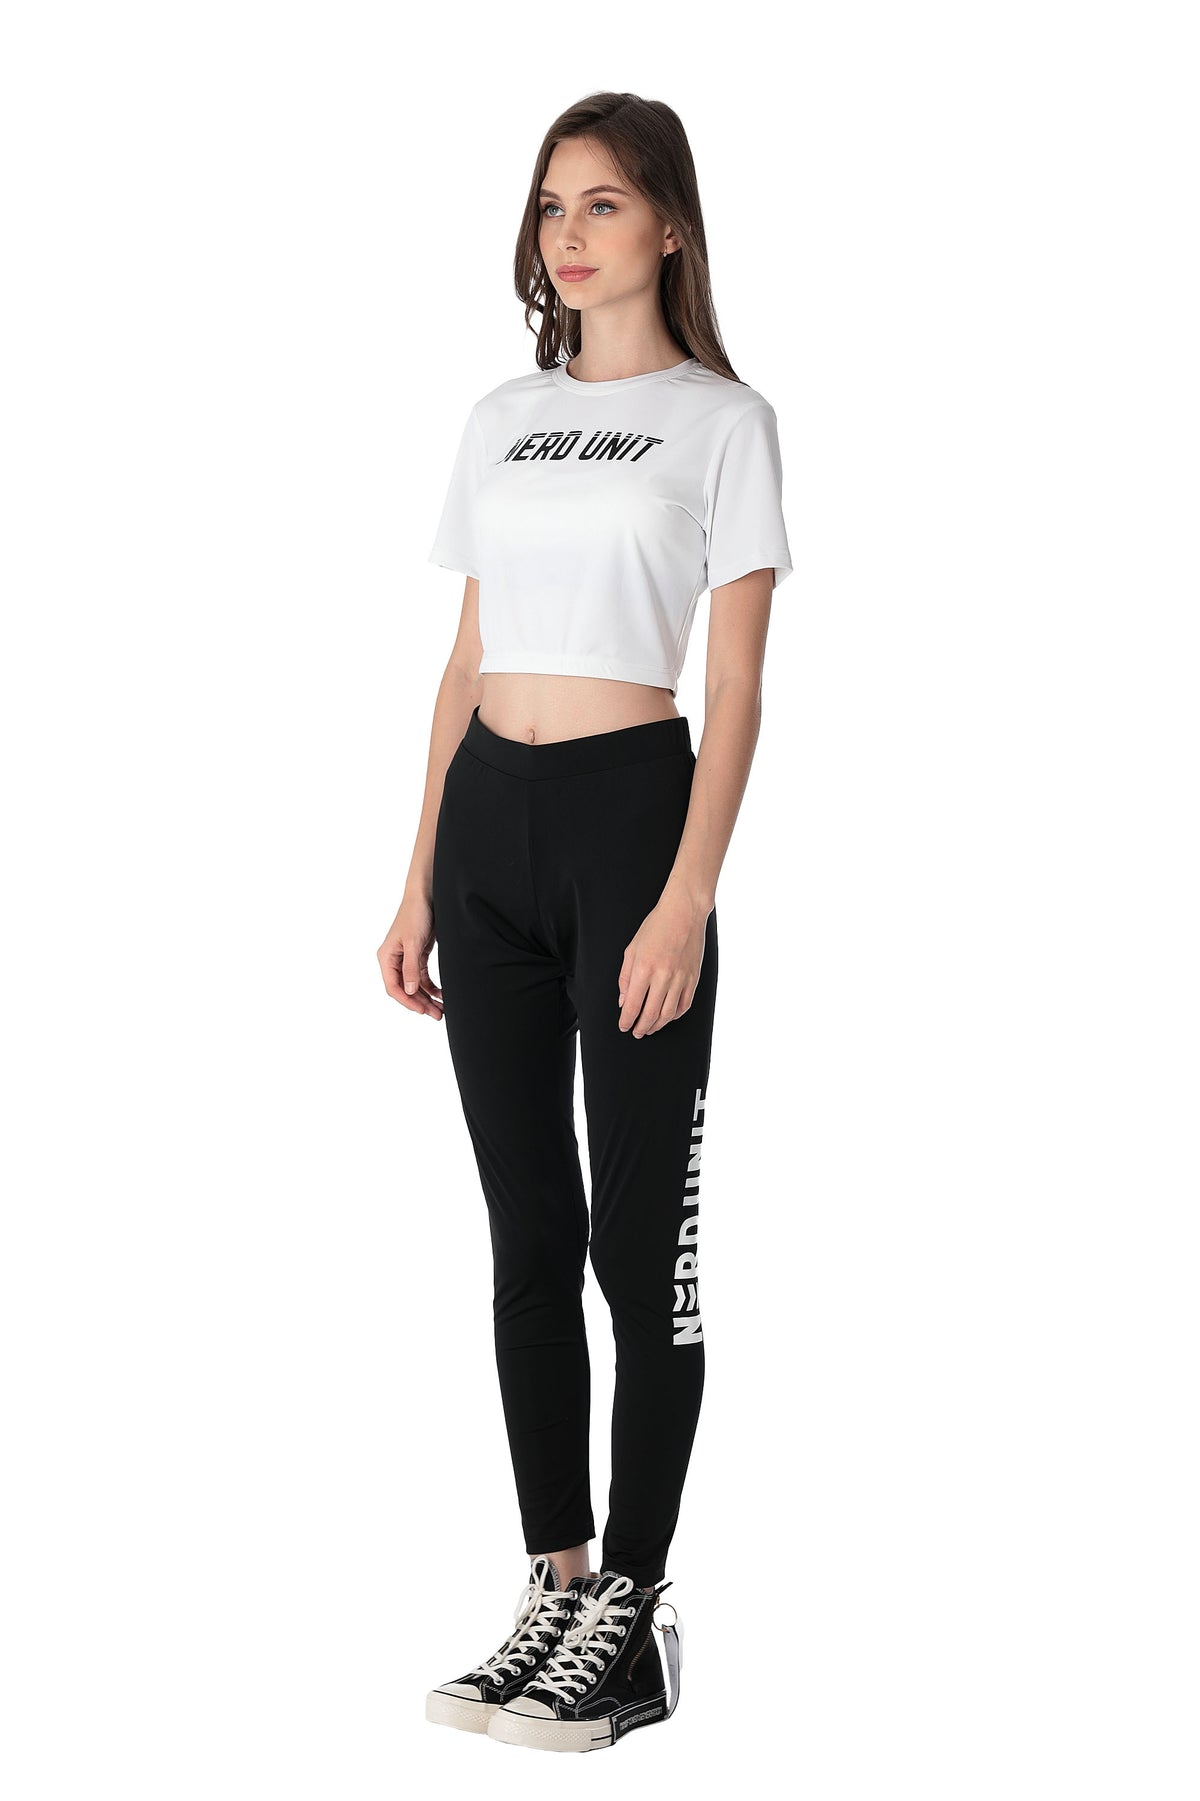 ACTIVE CROP TOP | WHITE ( アクティブ クロップトップ | ホワイト )